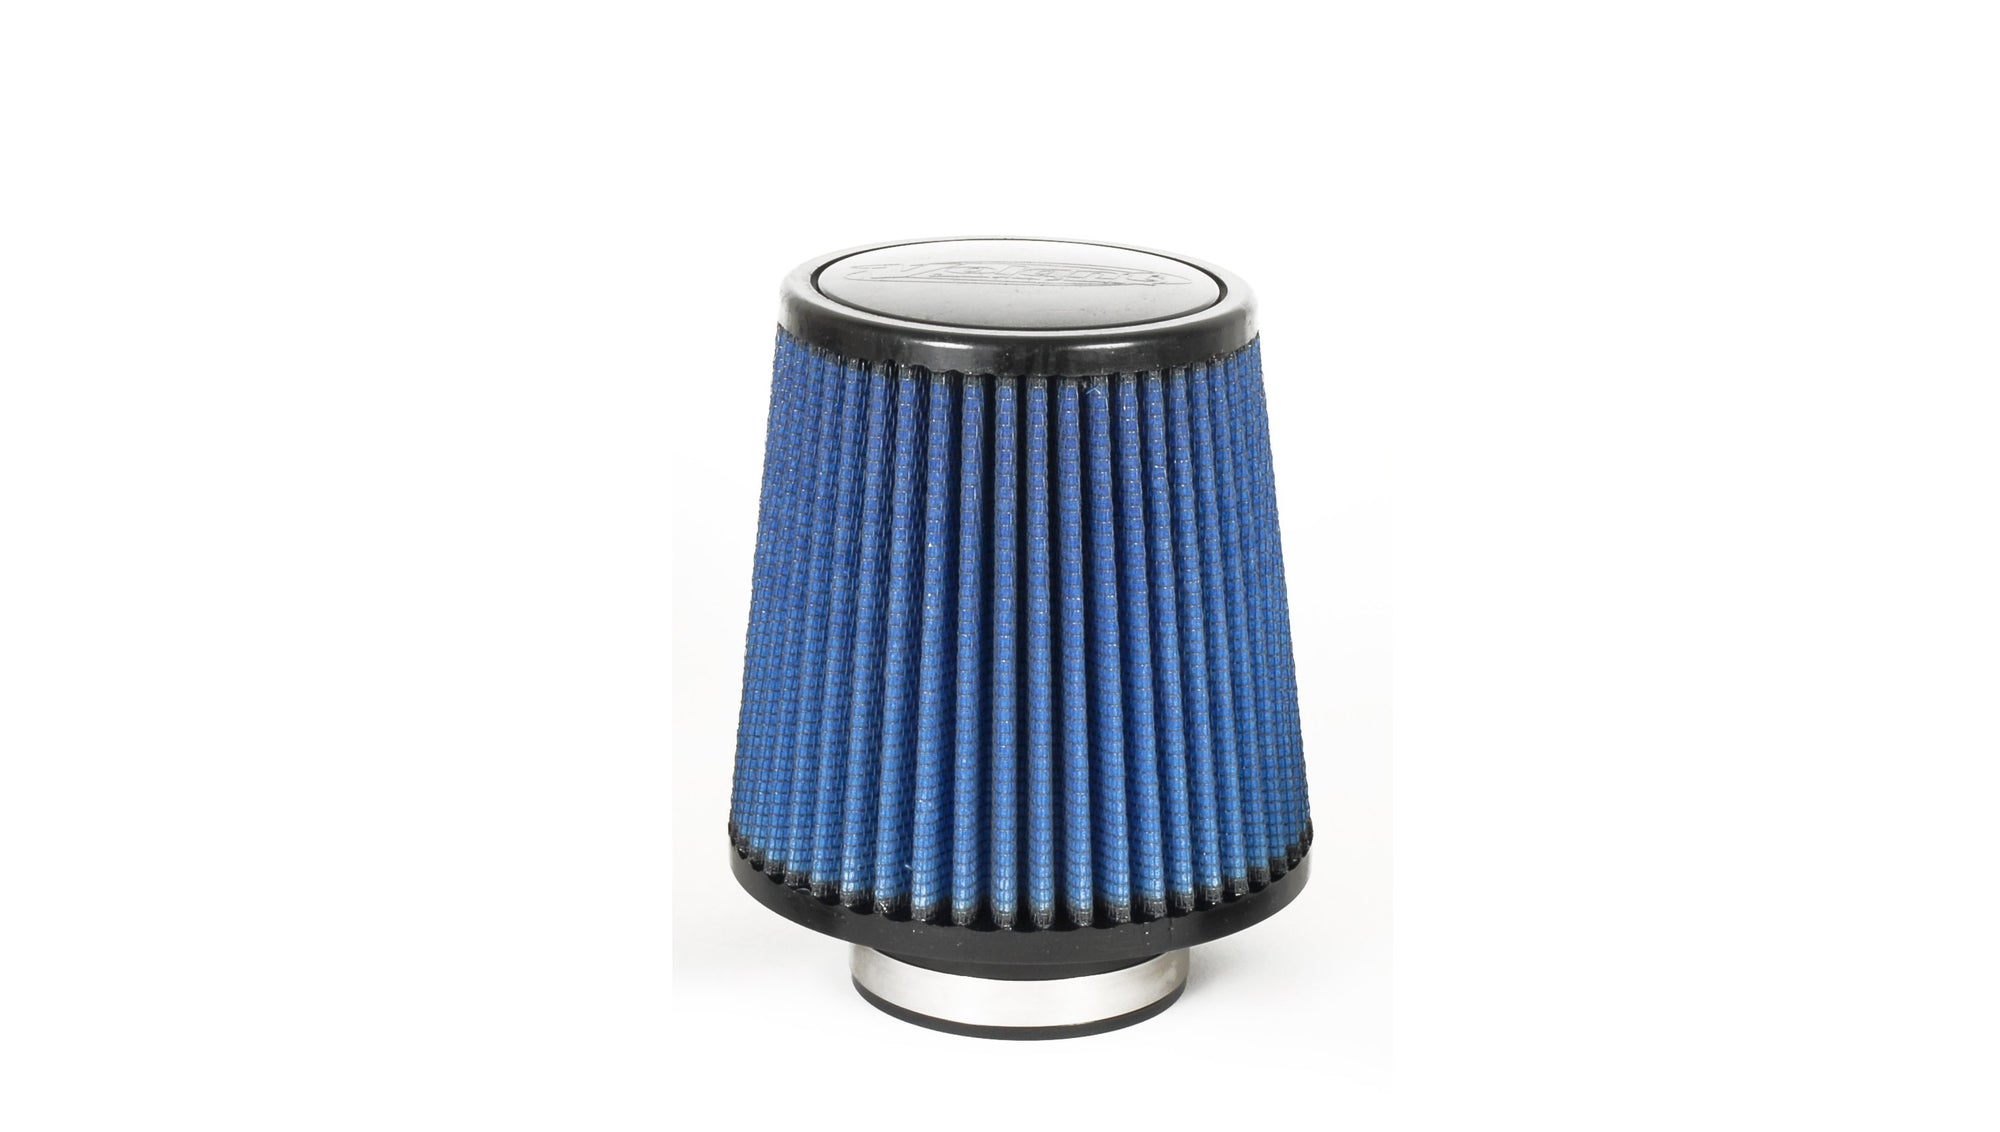 Pro5 Cotton Oiled Air Intake Air Filter - 5129